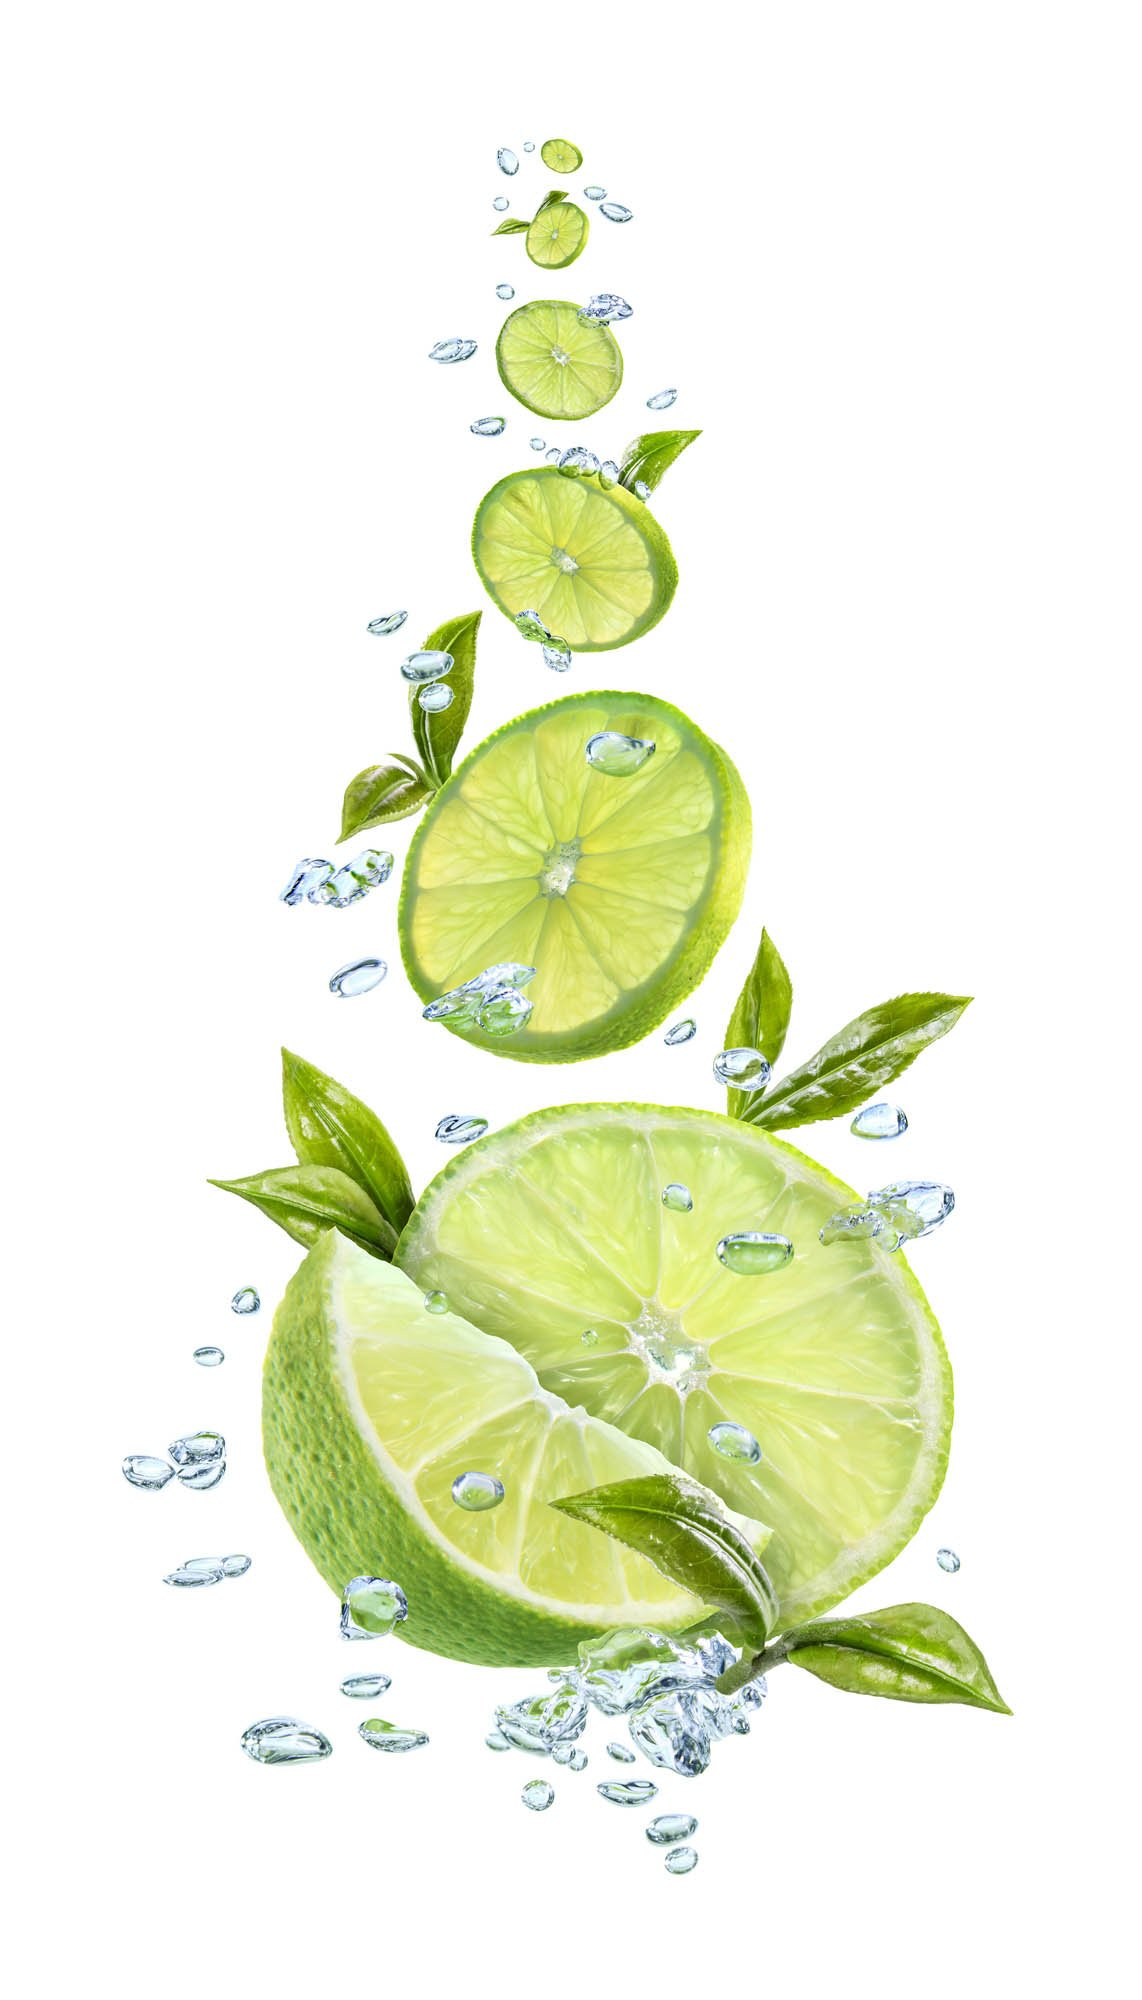 Photo retouched and edited falling limes with water